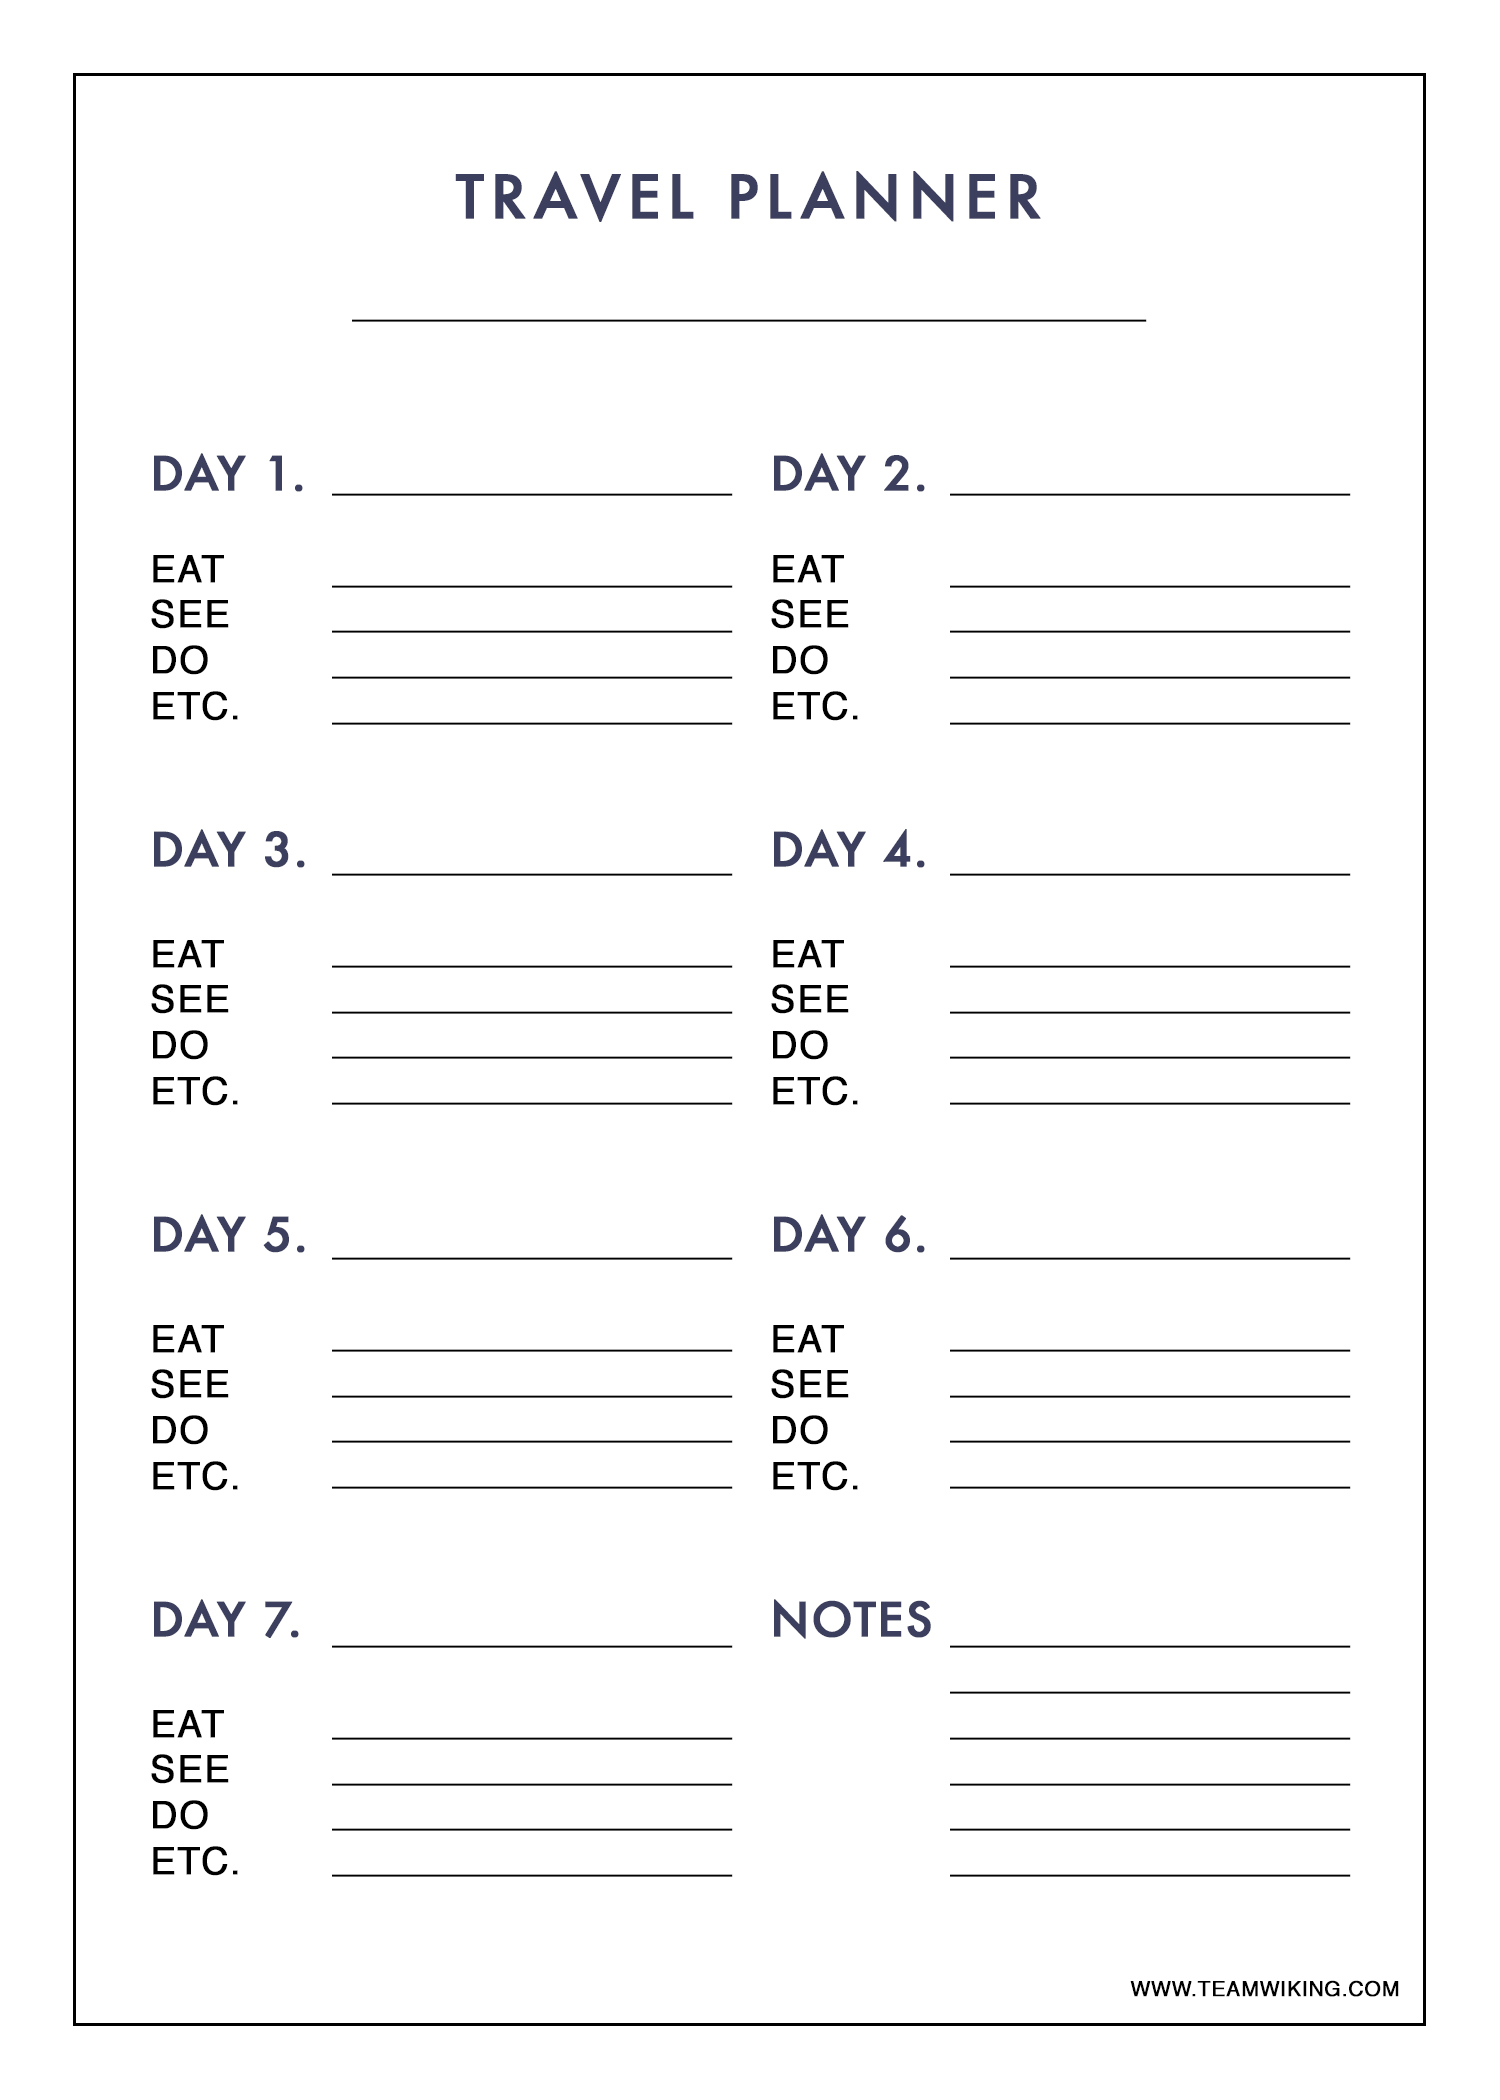 Free Printable 7 Day Travel Planner